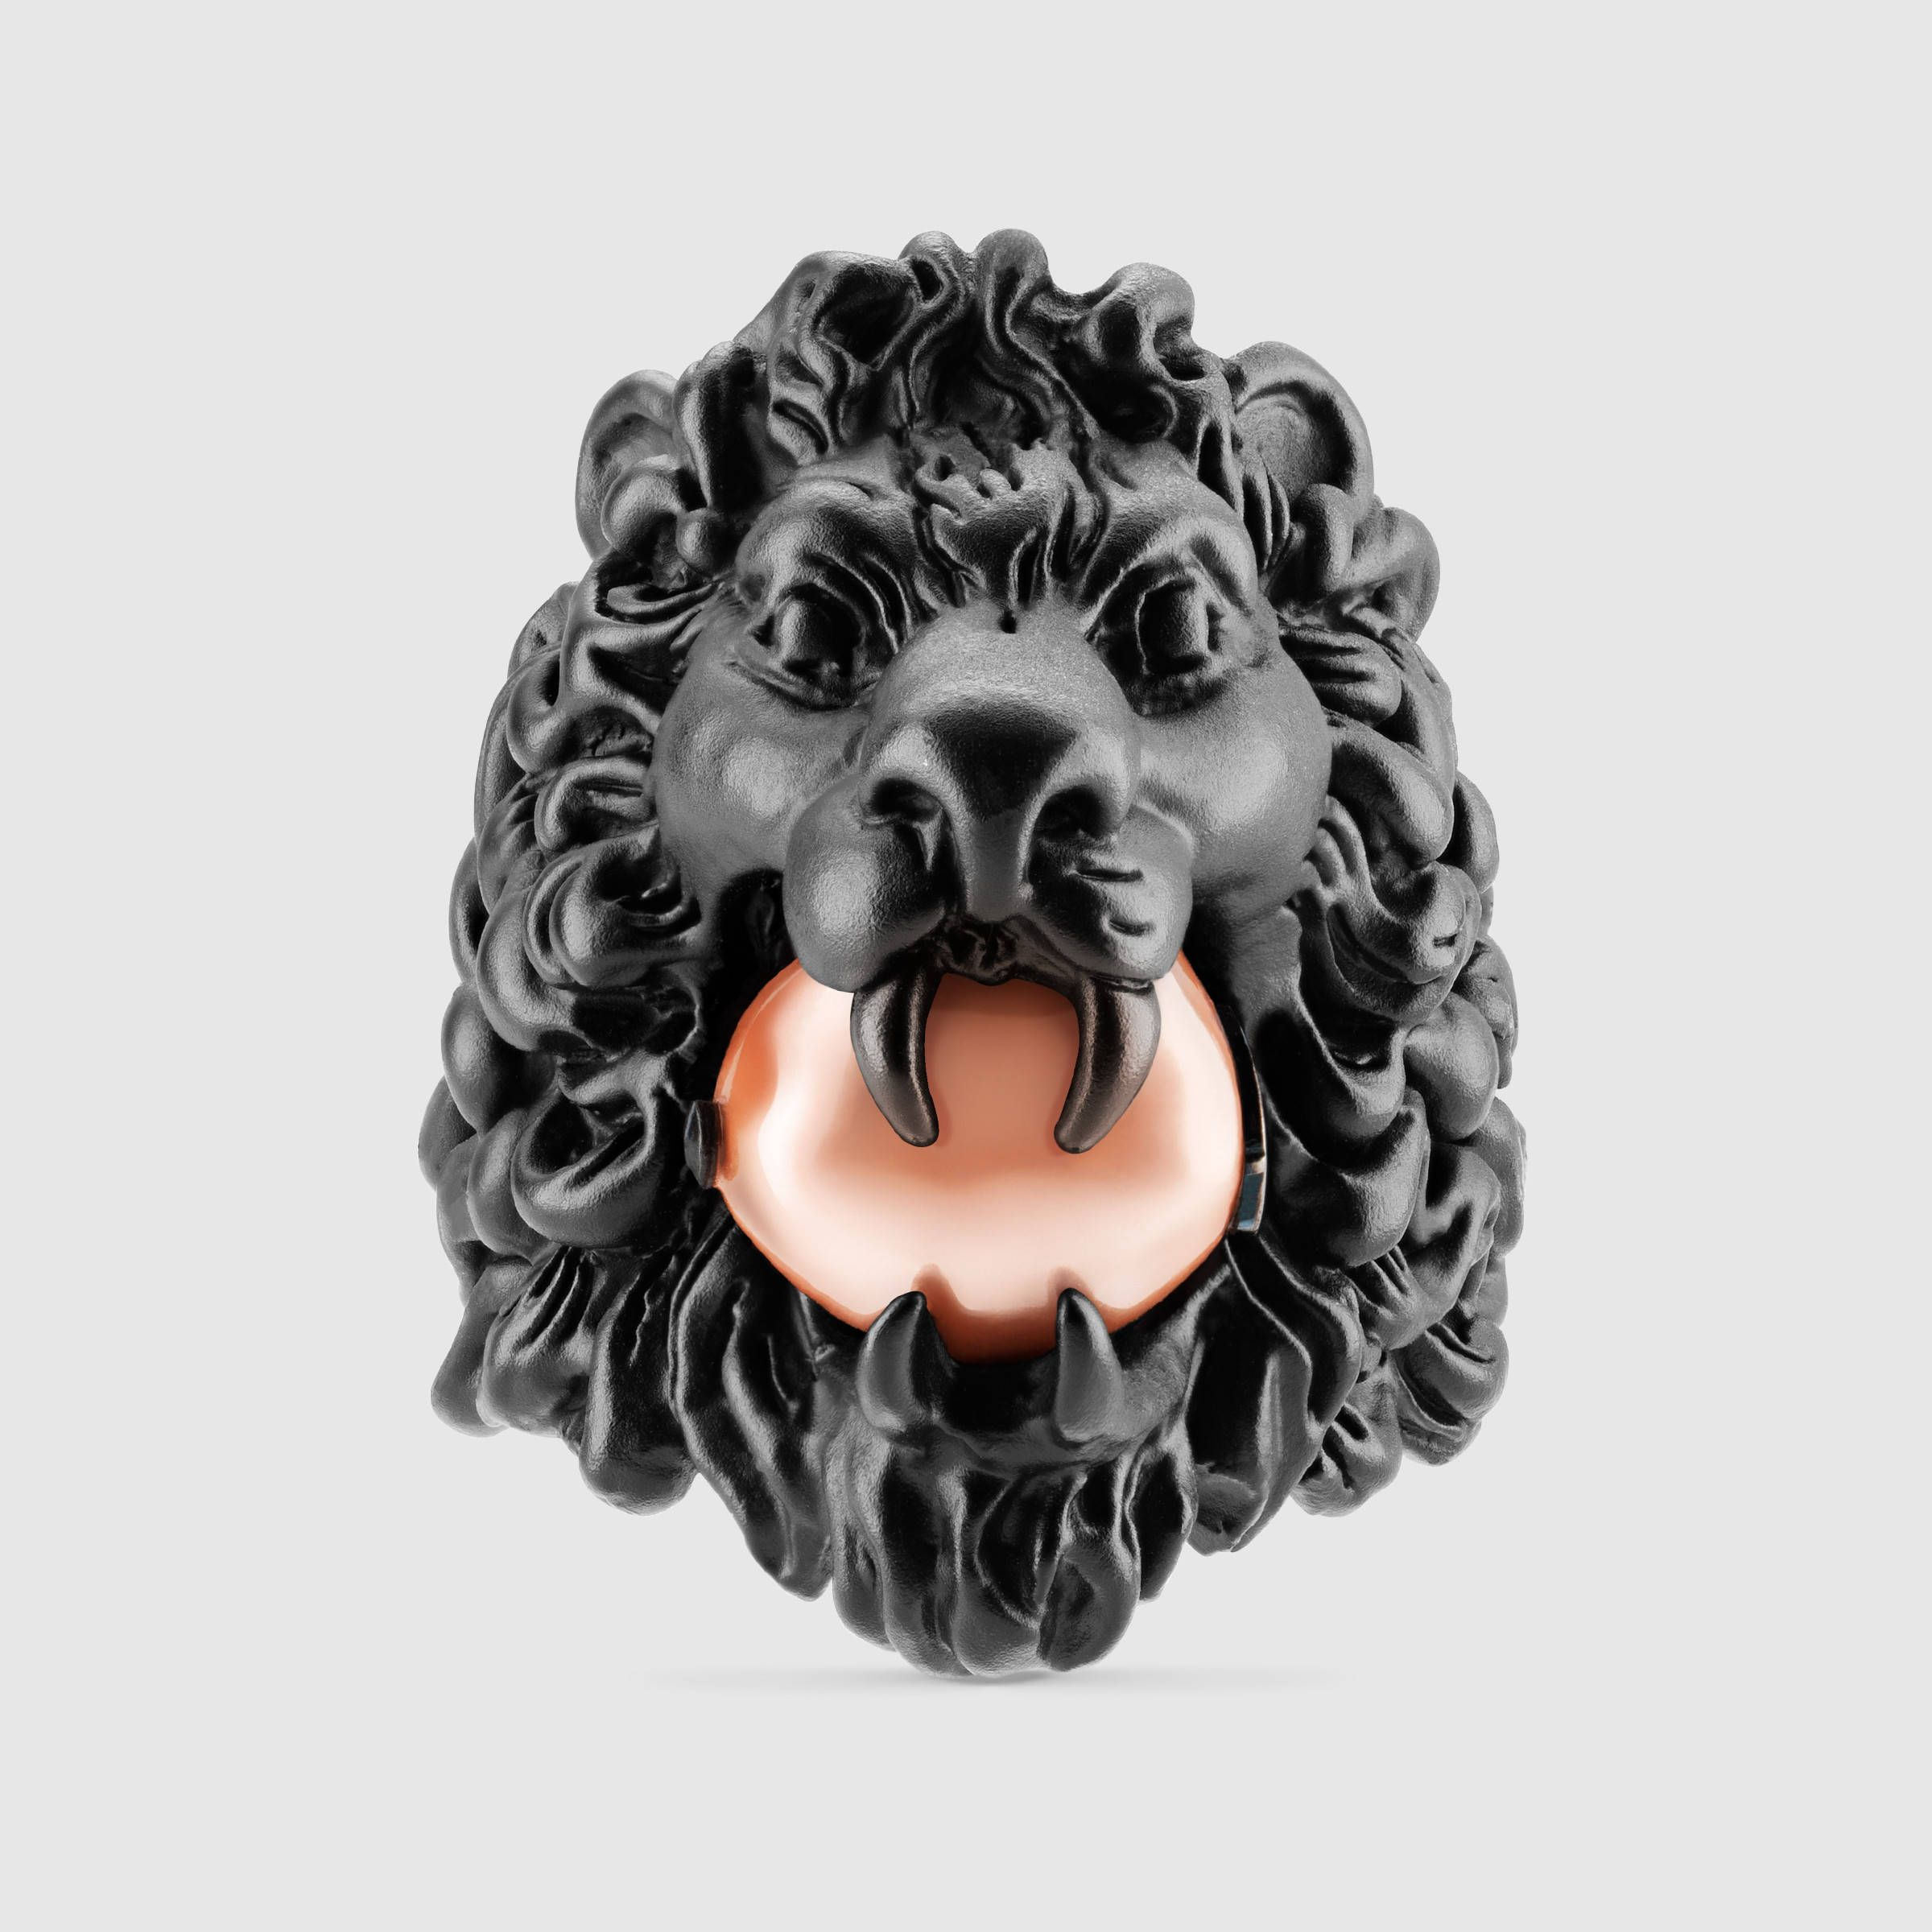 d8fc4bd3d Lion head ring with glass pearl - Gucci Rings $390 | Watches | Gucci ...